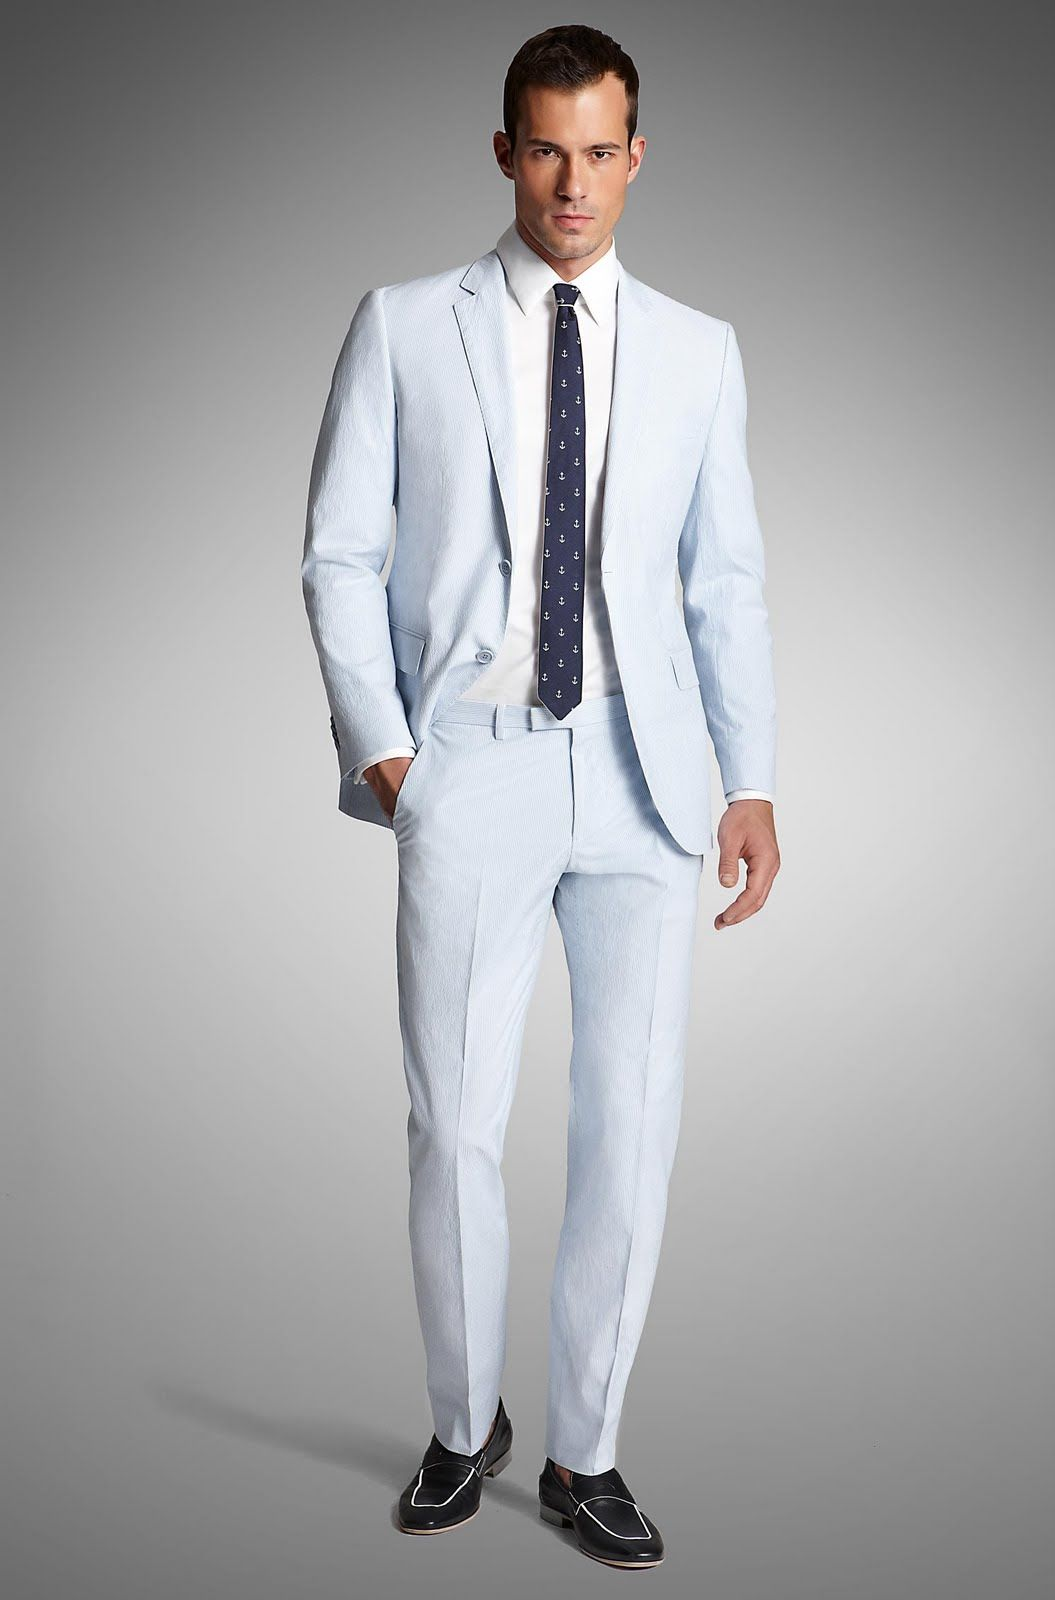 Suits & Suit Separates: Free Shipping on orders over $45 at litastmaterlo.gq - Your Online Suits & Suit Separates Store! Get 5% in rewards with Club O!